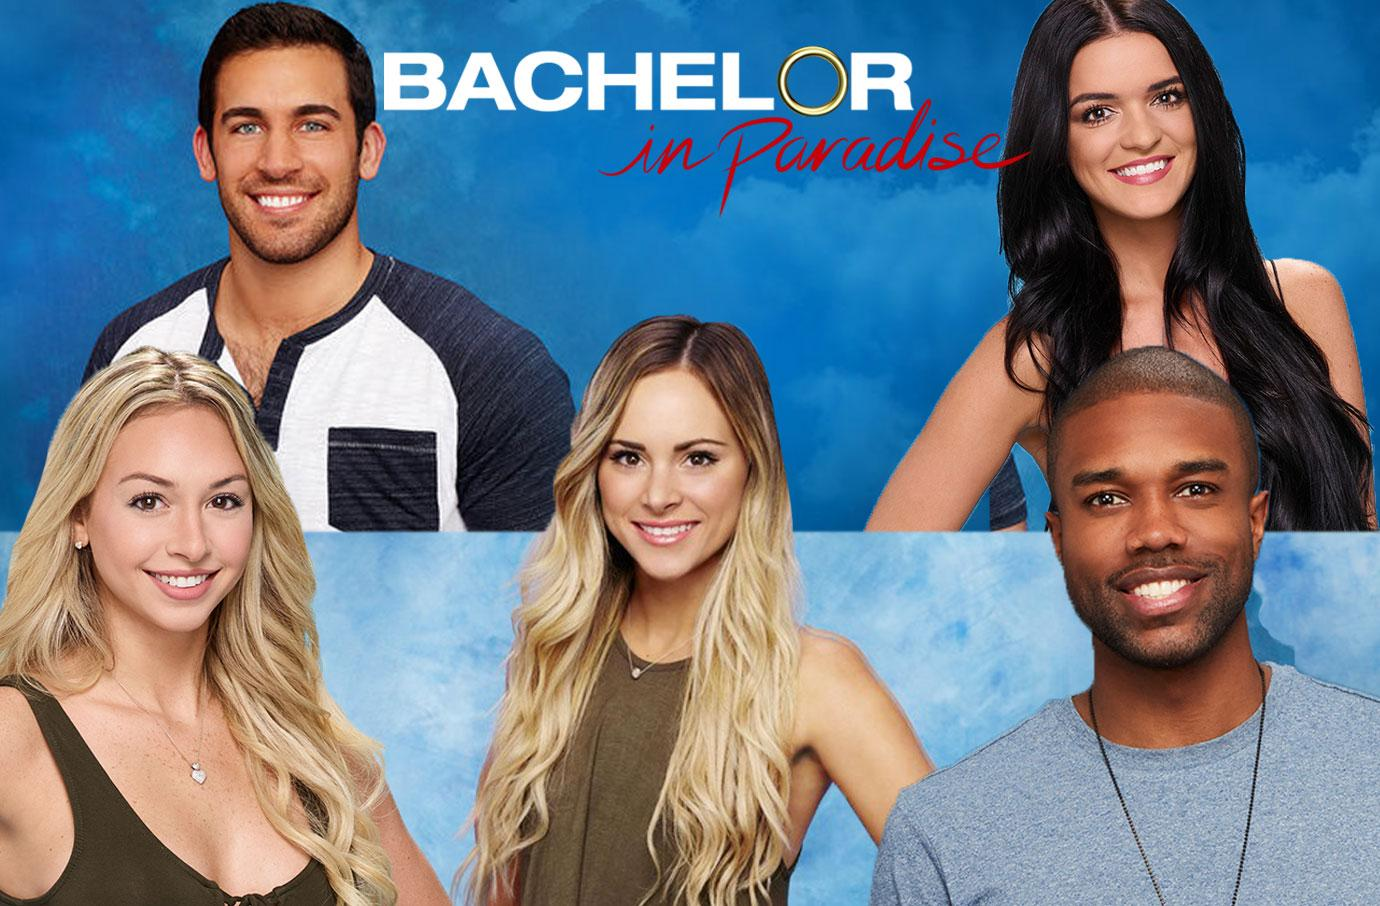 bachelor in paradise cast alleged sexual assault blown out of proportion